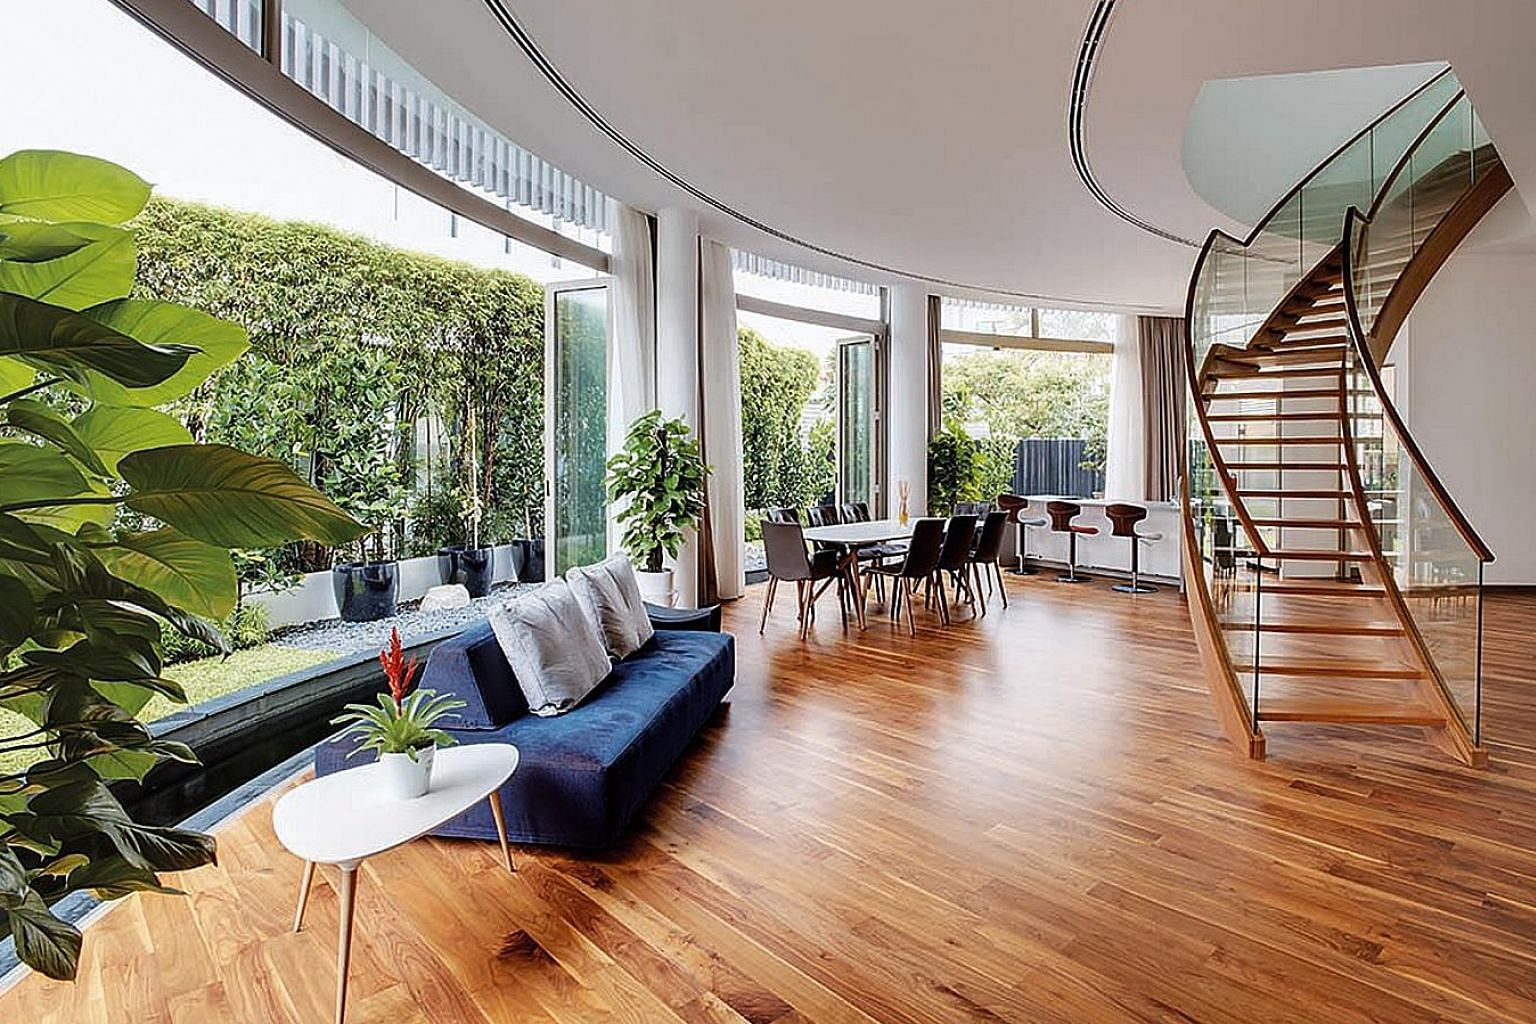 """Deep eaves shelter the entertainment room housed in the glass attic. The elegance, lightness and porosity of the curved staircase, constructed of mild steel and with timber veneer cladding, complement the """"floating"""" quality of the house. The facade t"""